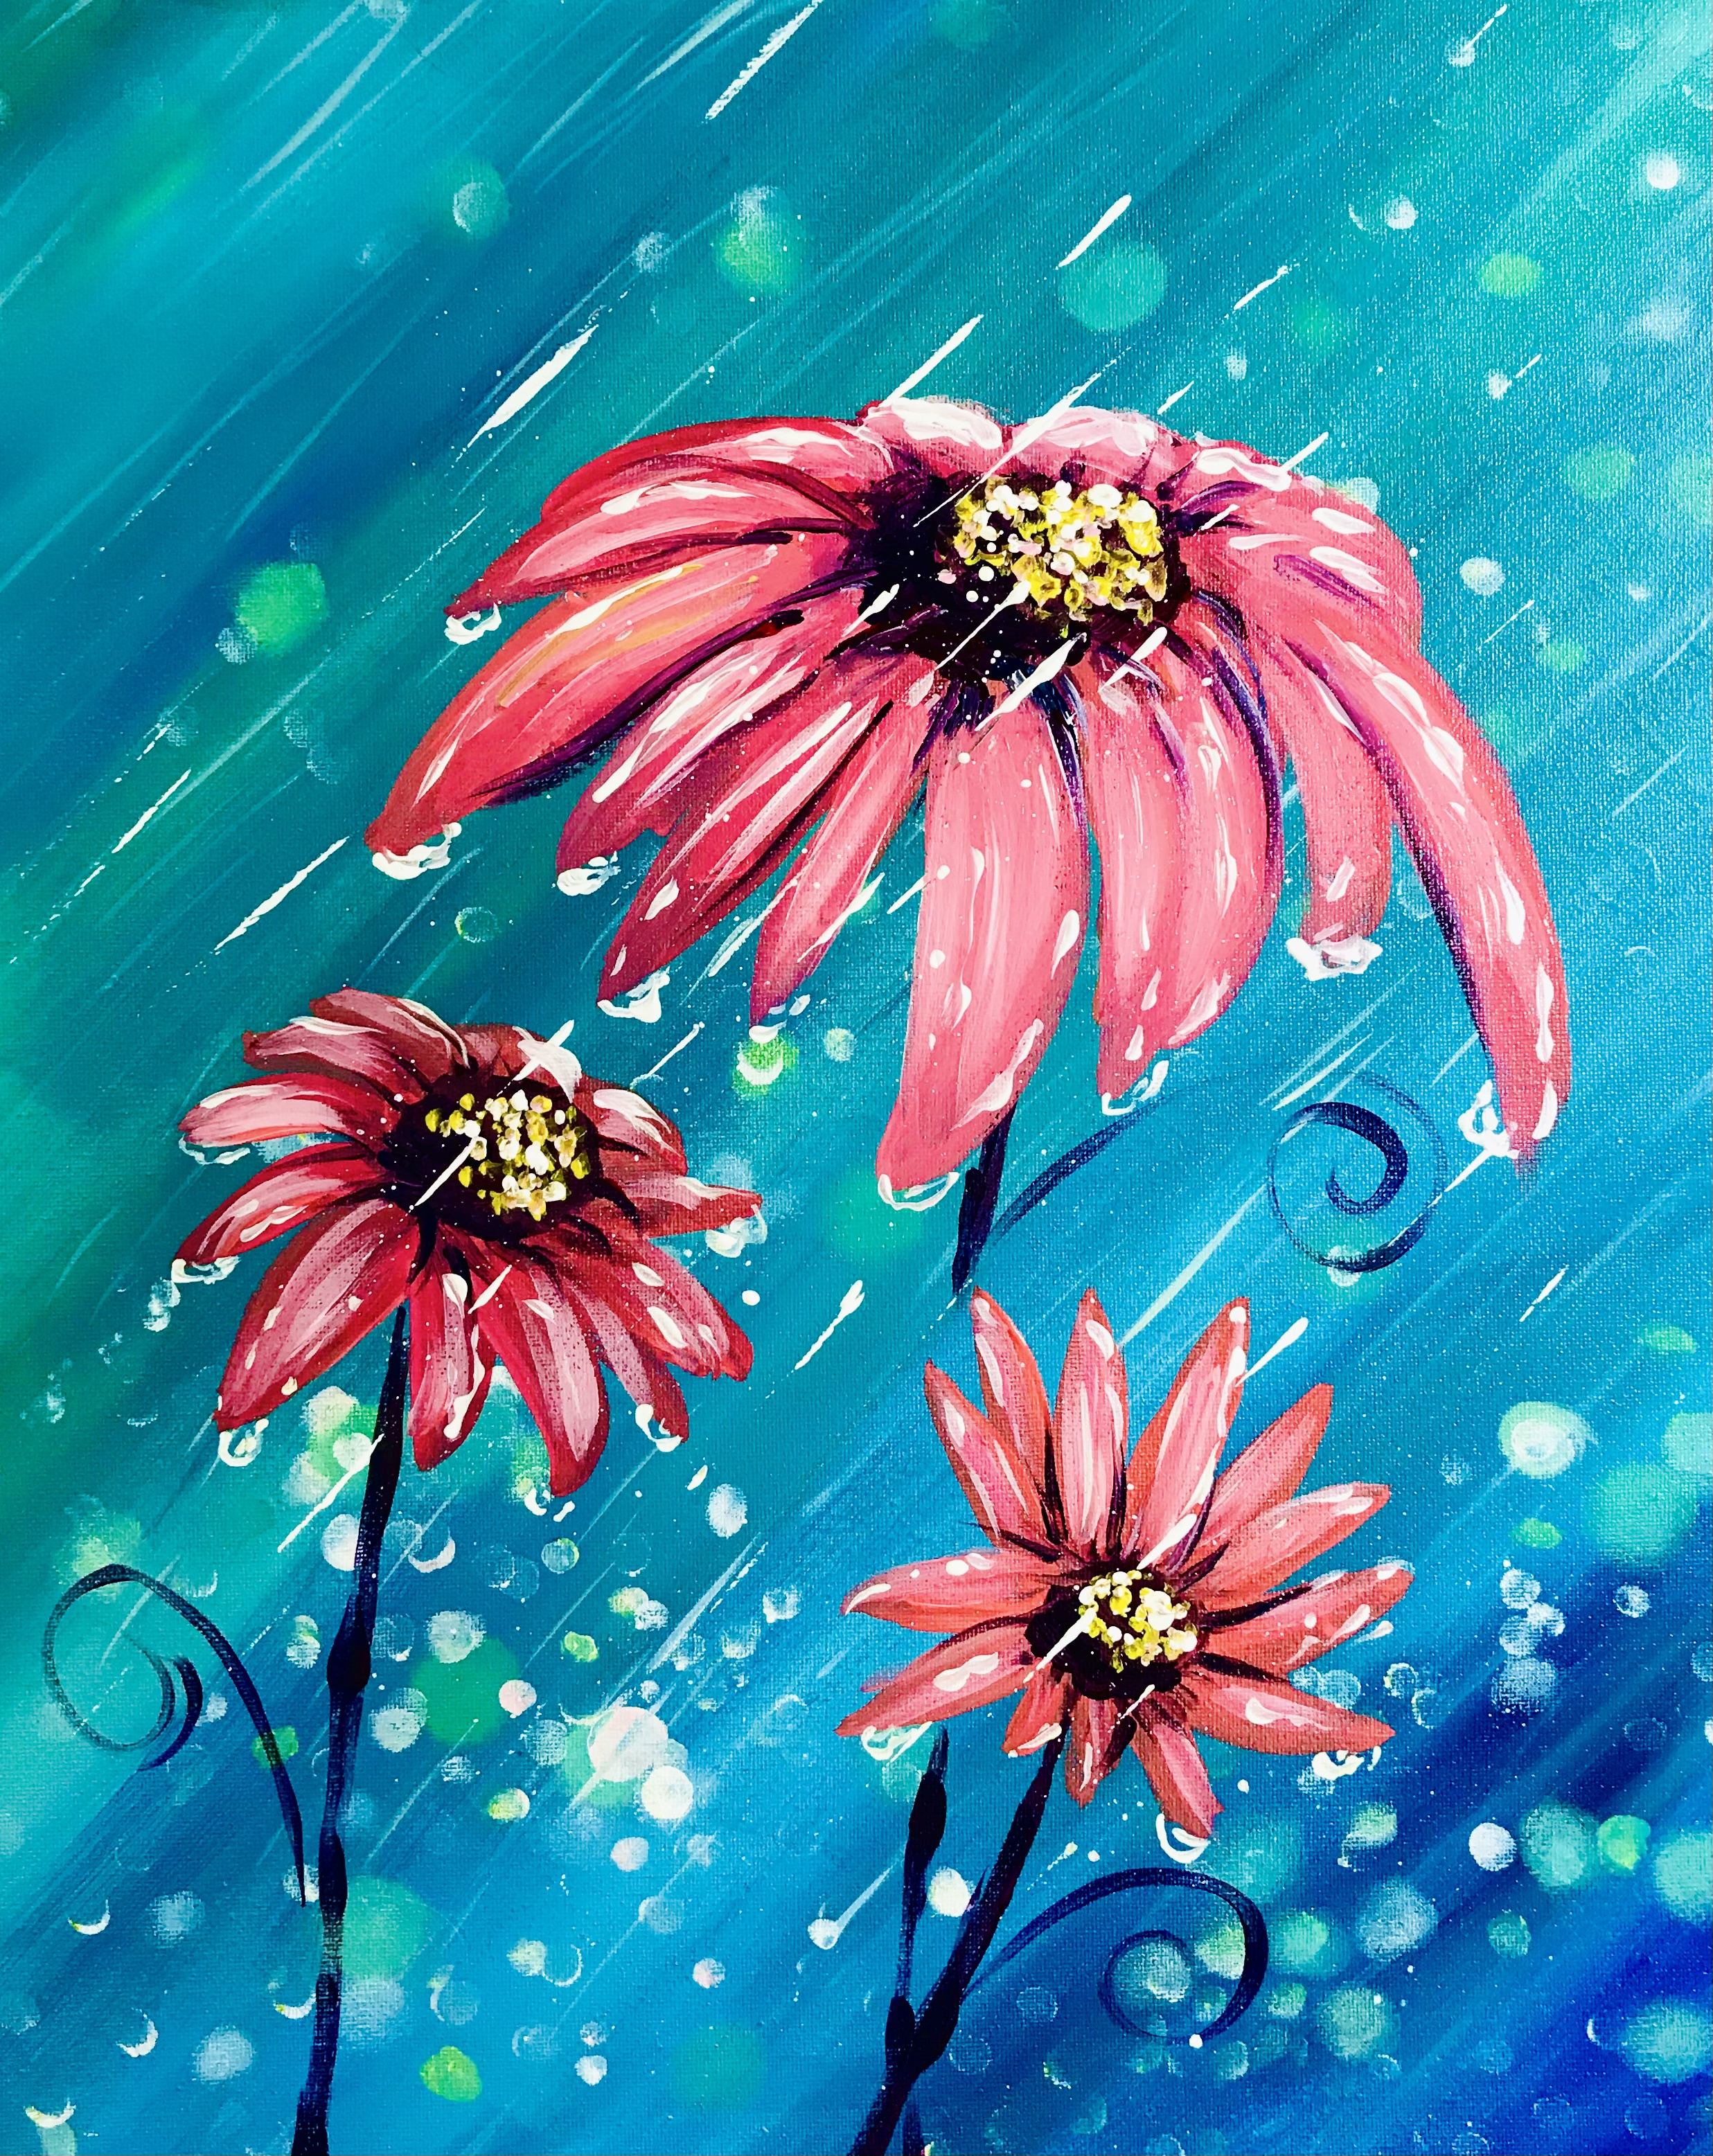 A Rainy Daisies experience project by Yaymaker